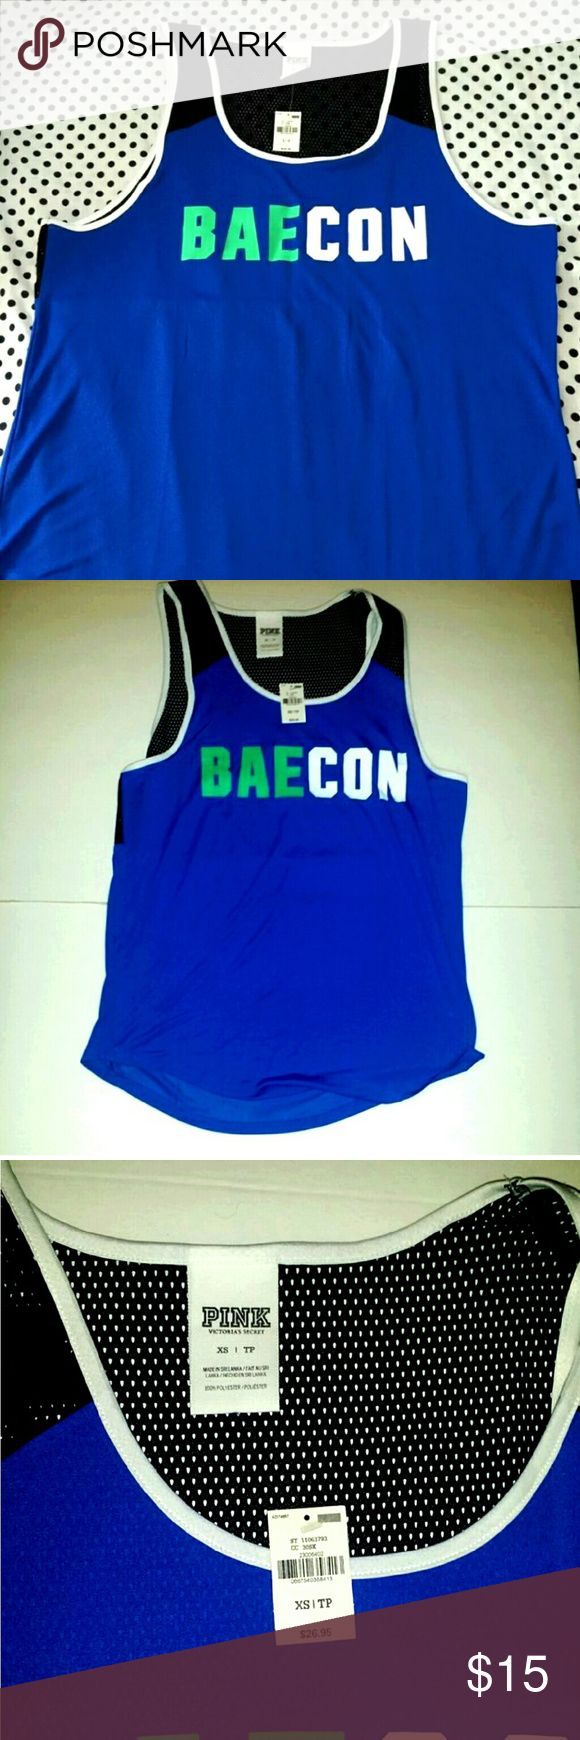 New w/tag Victoria Secret #PINK tank top mesh NWT #VictoriaSecret #PINK tank top Brand new with tags from the pink store by Victoria Secrets is the ultimate material tank top with mesh black backing and Royal blue fabric. It says #Bae con on the front-a play on the word #Bae (Before Anyone Else) and Bacon. Size L, size XS, and size S. Retail price $26.95. PINK Victoria's Secret Tops Tank Tops